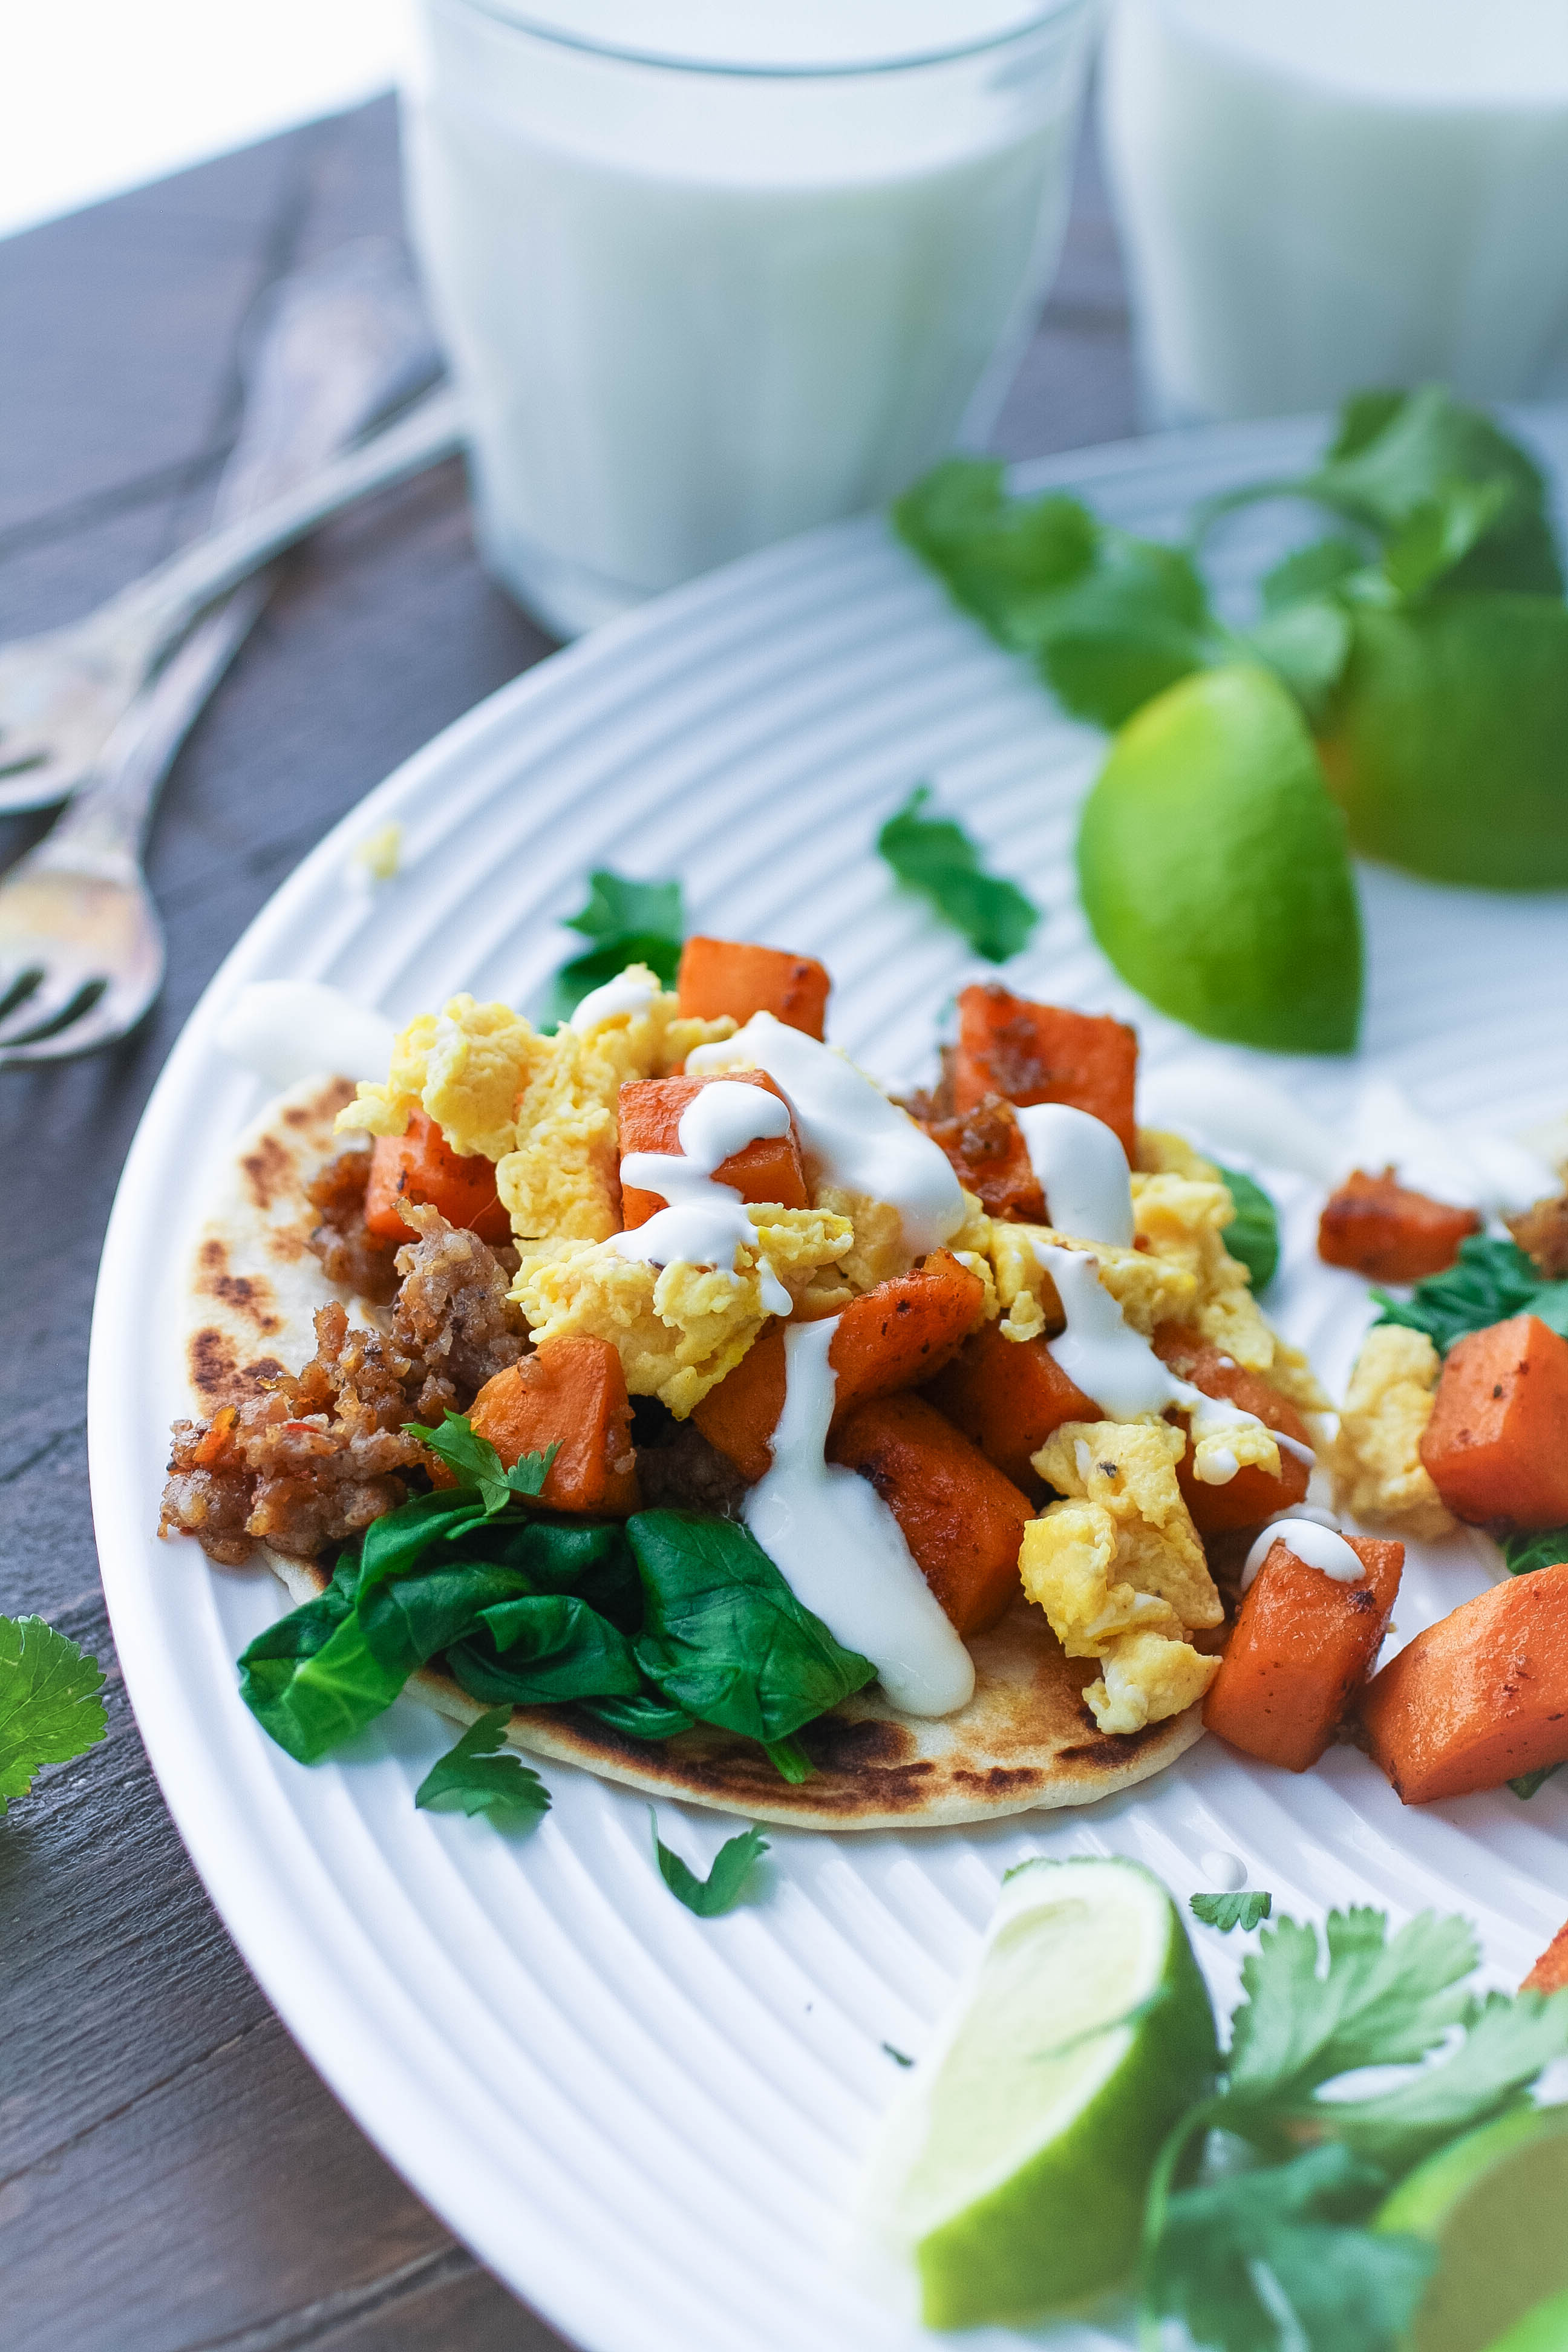 Breakfast Tacos with Sweet Potatoes, Sausage, Spinach, and Lime Crema are tasty tacos, for sure! Make these Breakfast Tacos with Sweet Potatoes, Sausage, Spinach, and Lime Crema for any meal of the day.